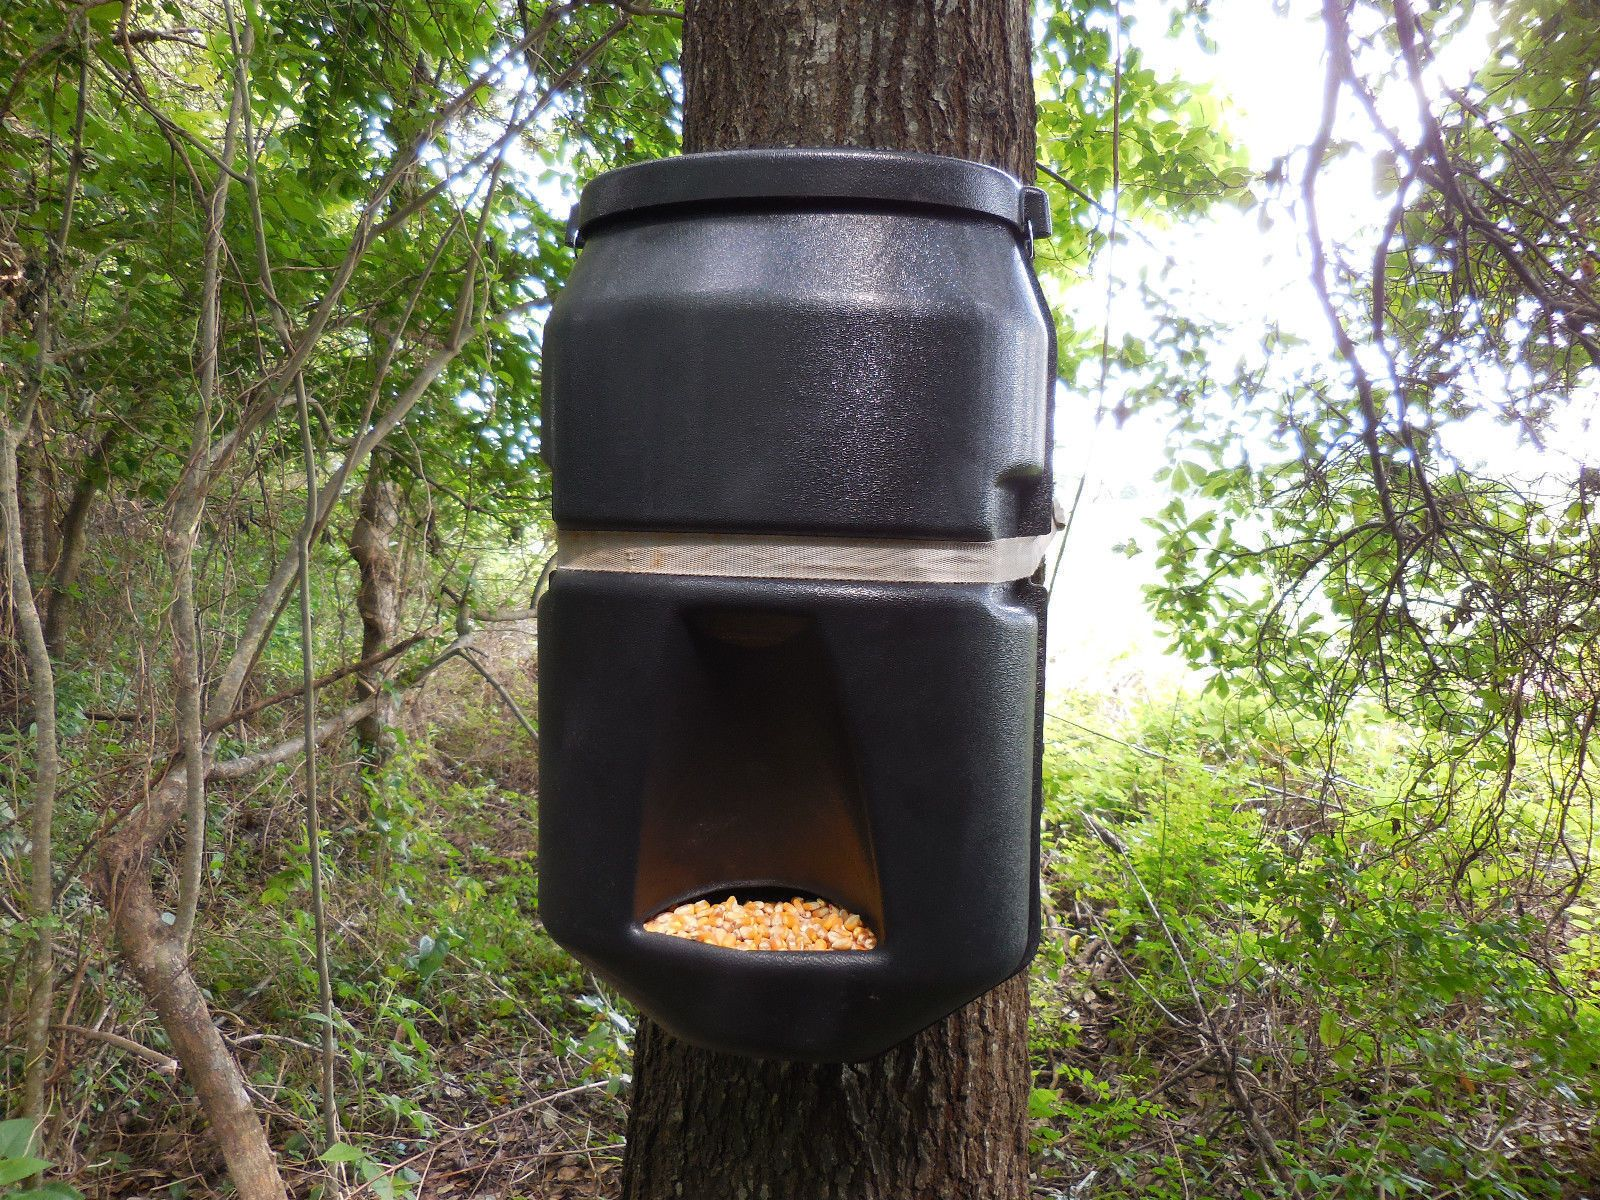 deer watch feeders gal protein youtube feeder drum icbj homemade diy pellet